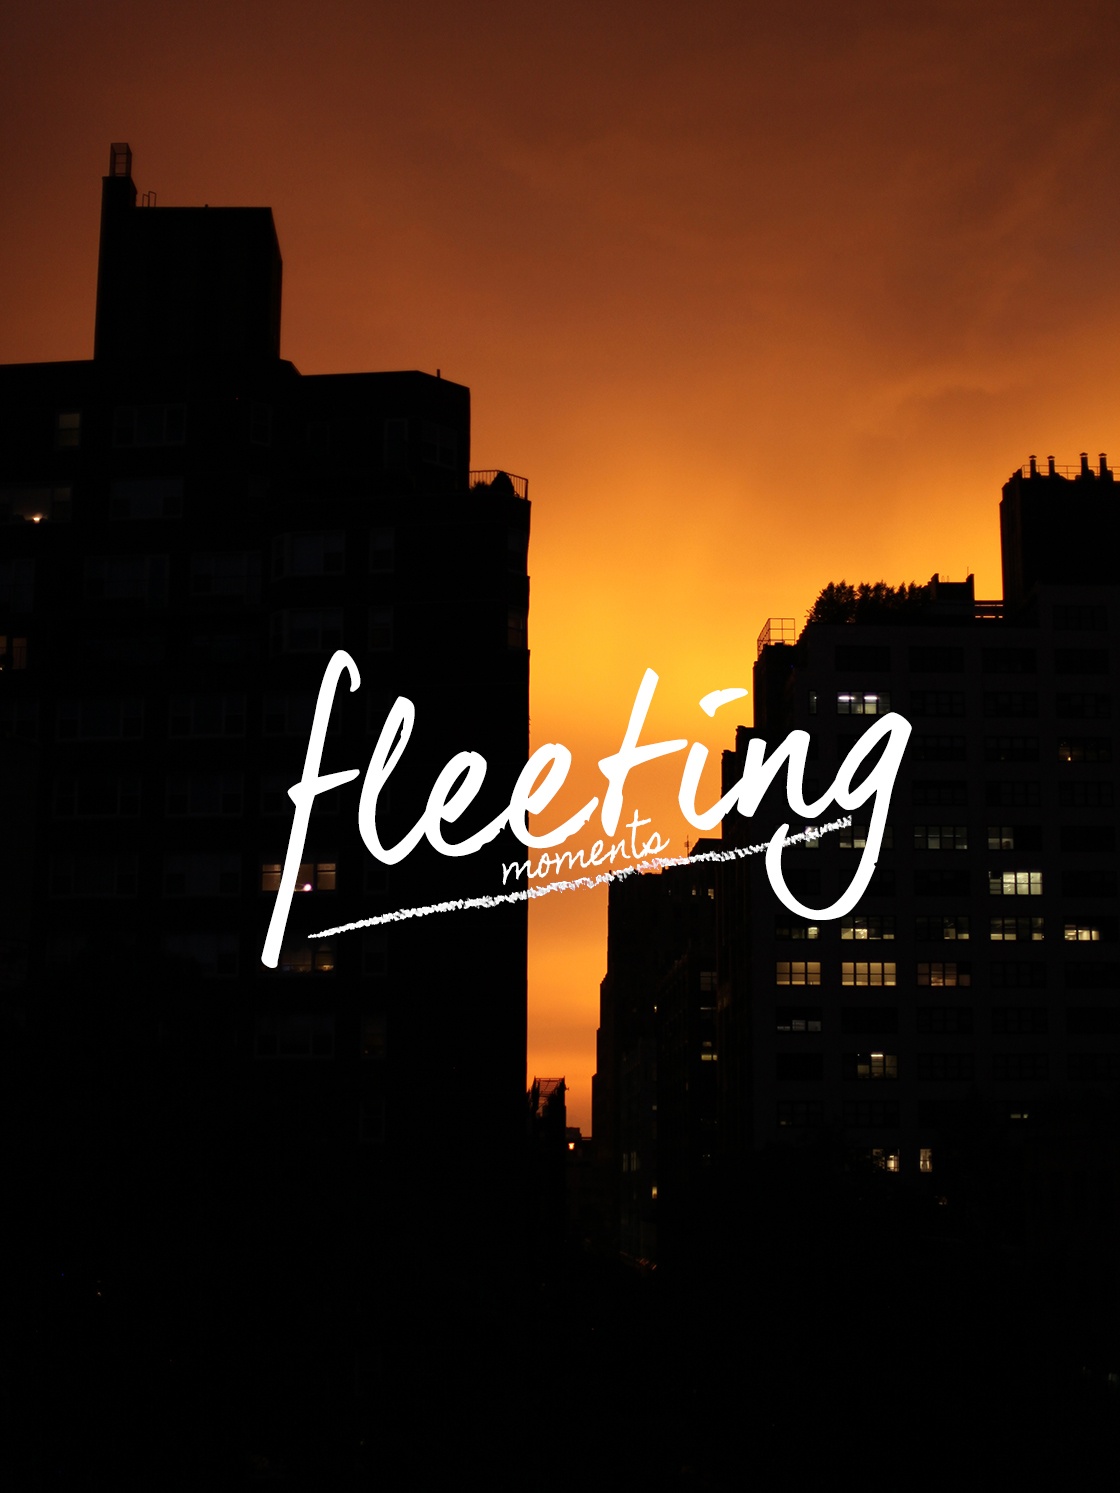 fleeting moments 1